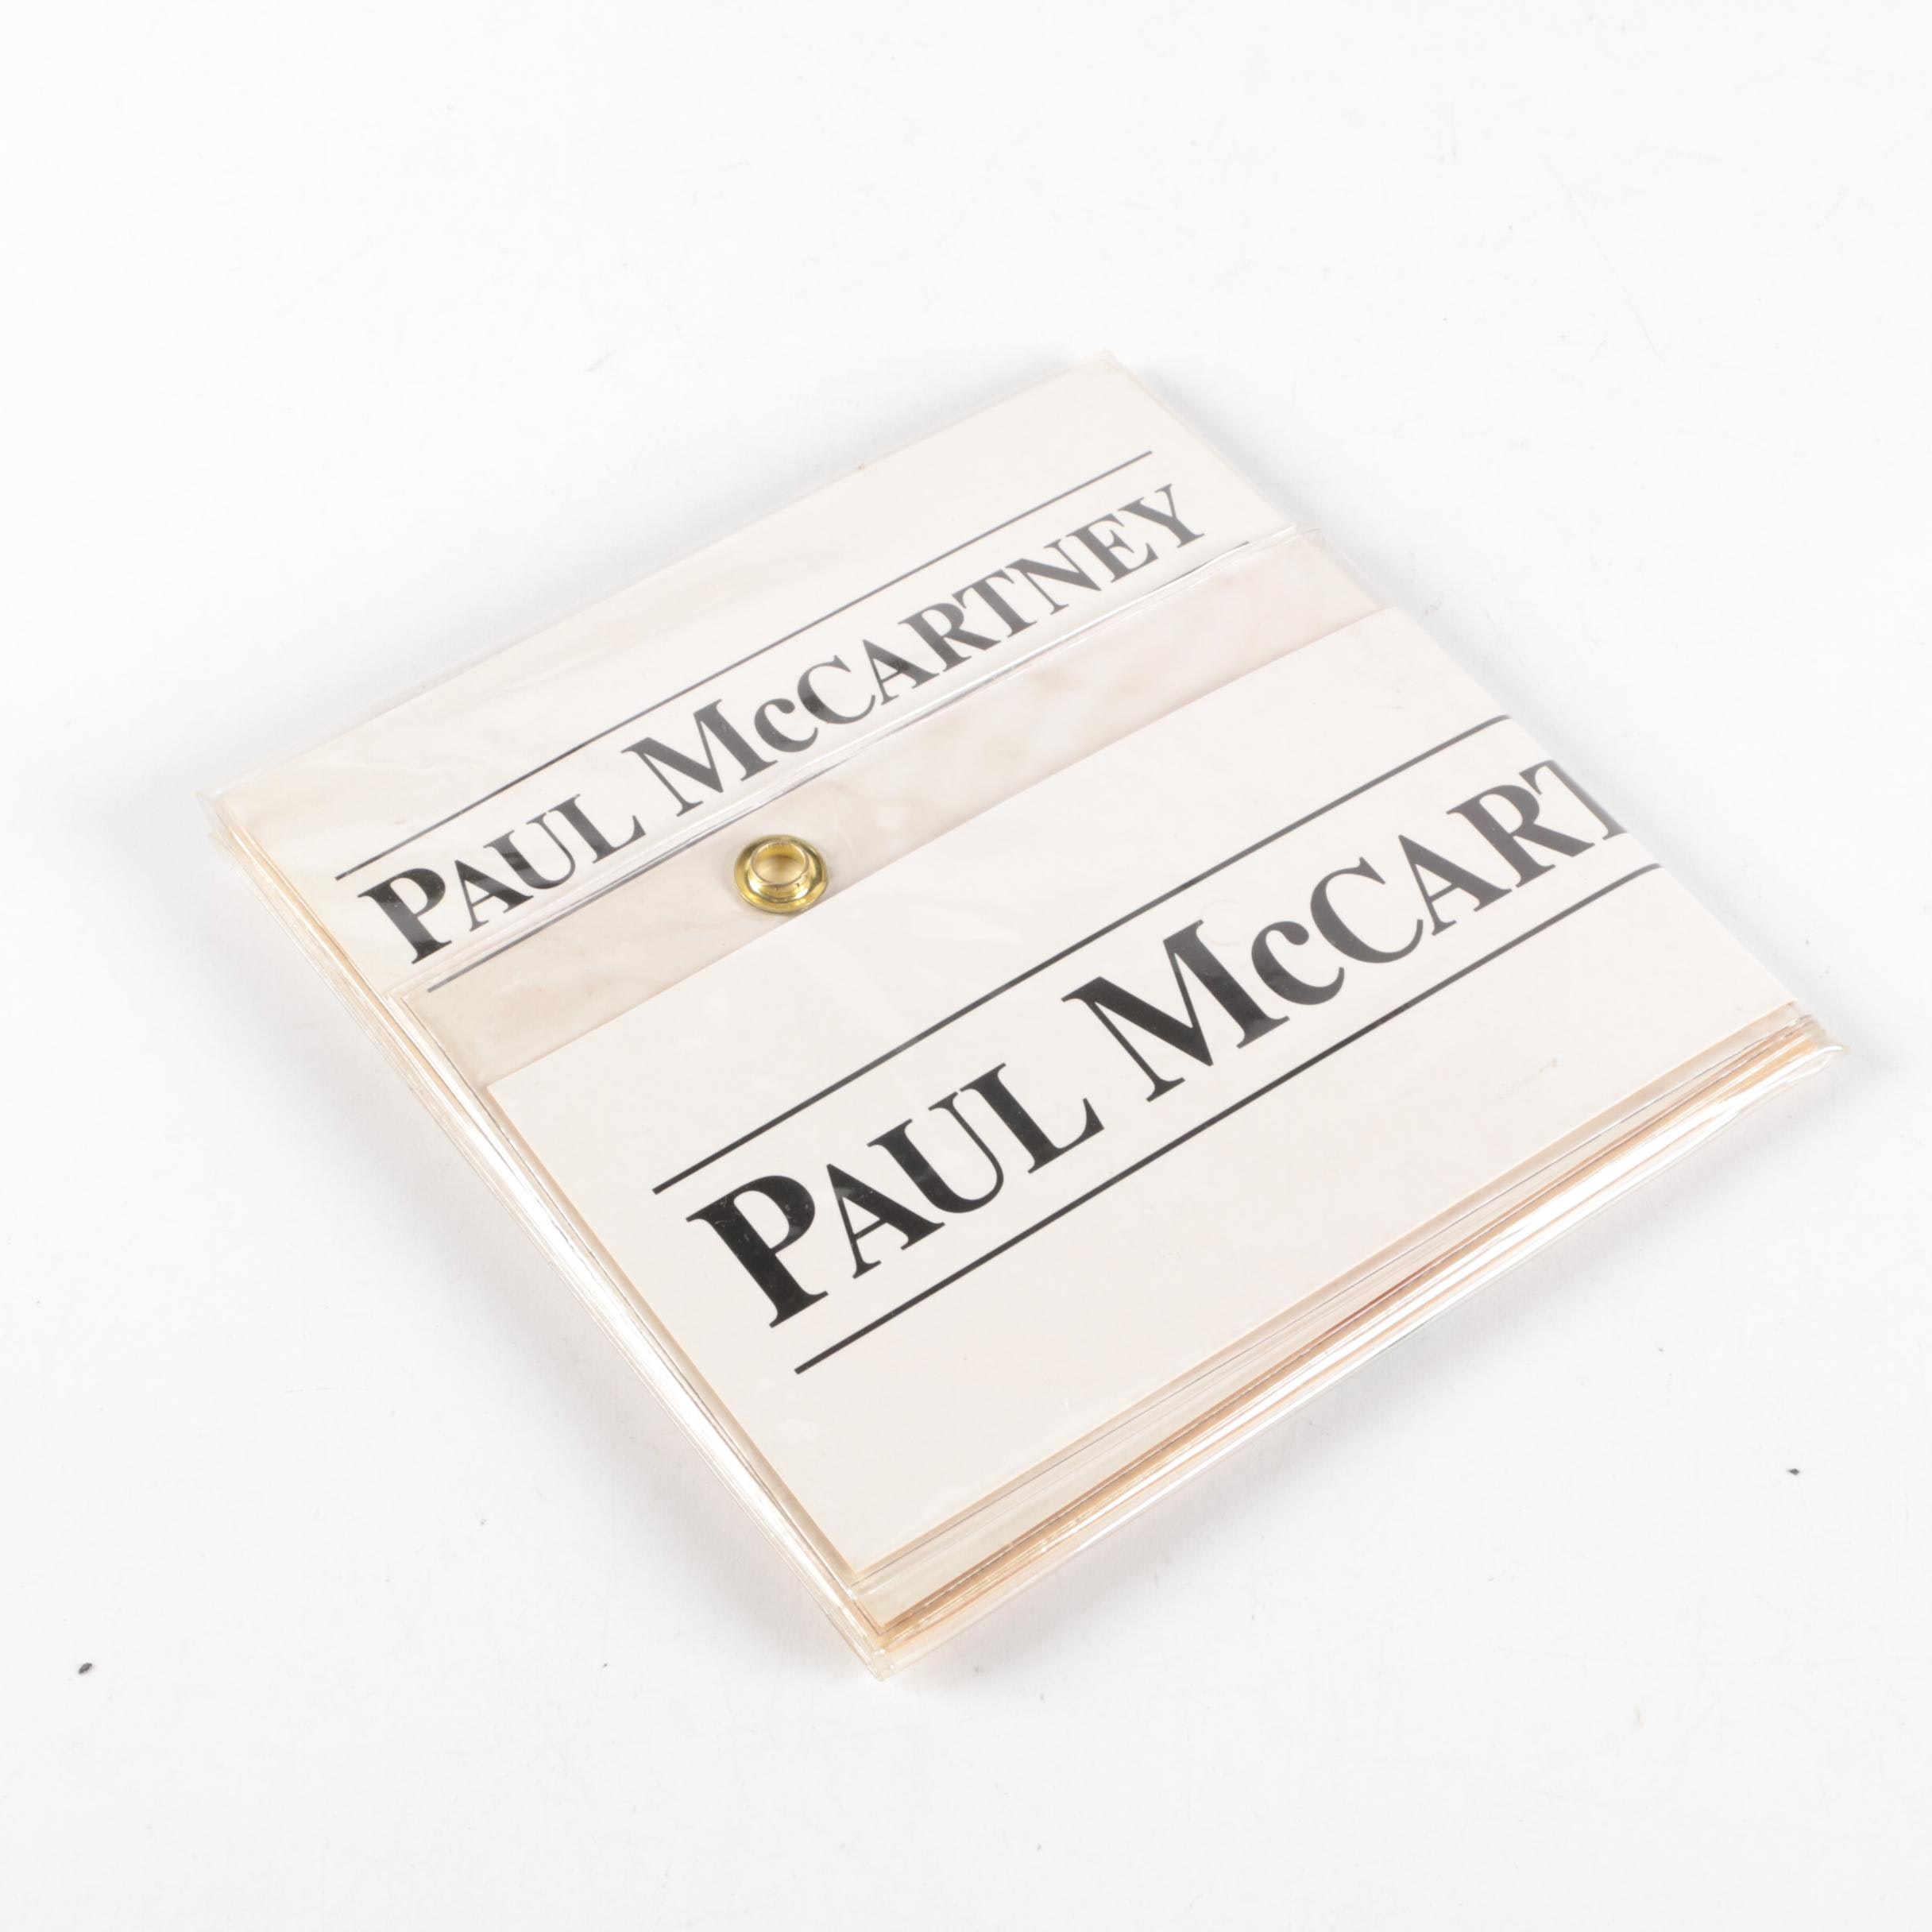 "1990 Paul McCartney ""Press Conferences"" 7"" Single Record Set"